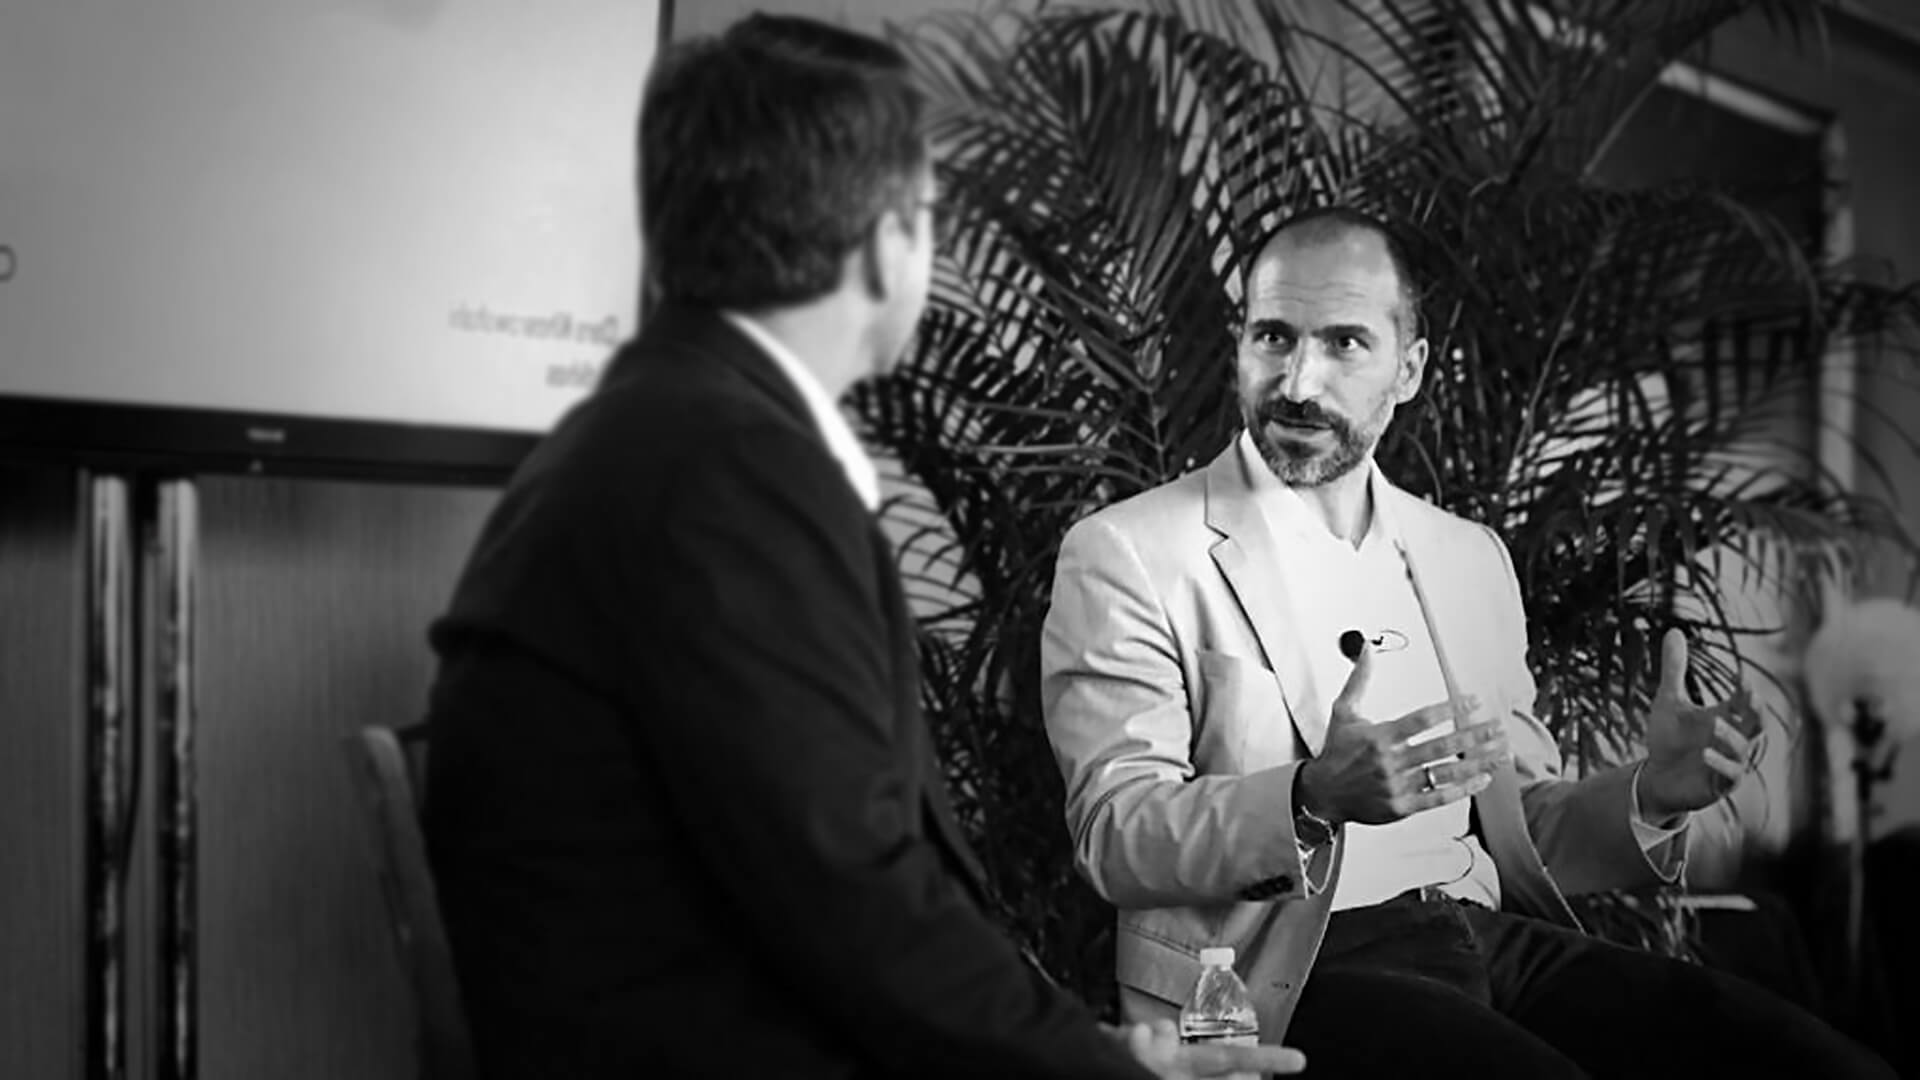 Current Expedia CEO Khosrowshahi has been offered the job as Uber's top executive, although he has yet to formally accept the CEO position.